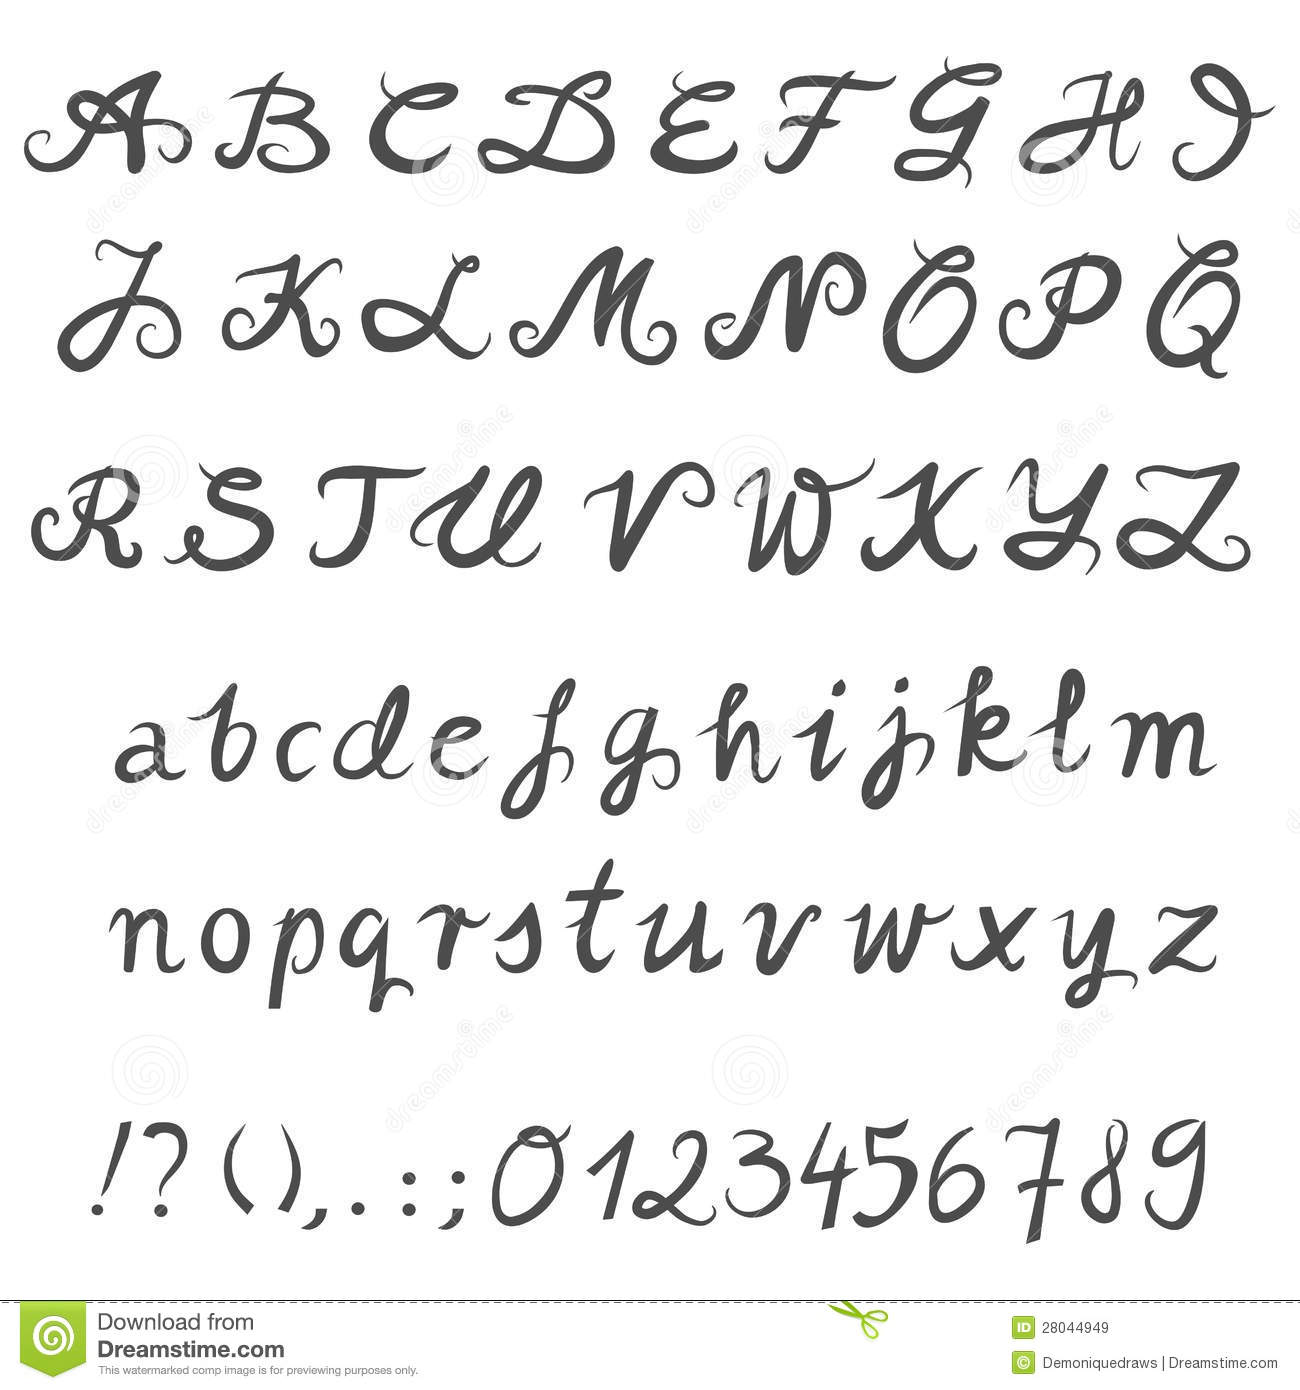 Coloring pages question mark - Hand Drawn Gray Letters And Numbers Royalty Free Stock